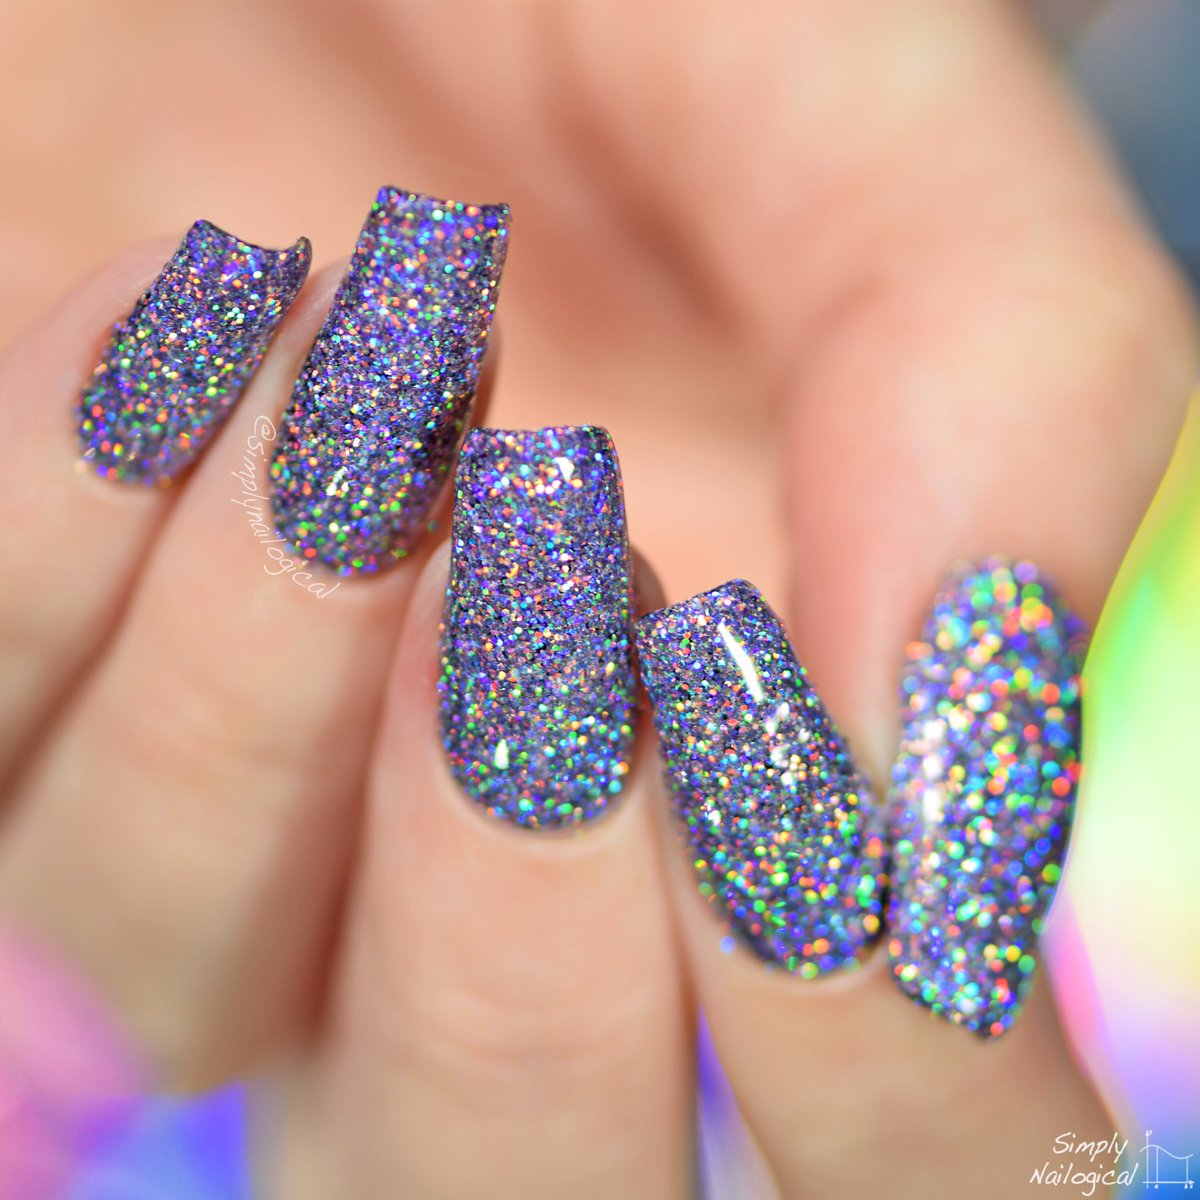 Simply Nailogical Cristine On Twitter Brace Yourselves It S A Photo Of My Nails Using The Spray H L Glitter I Played With In Latest Video